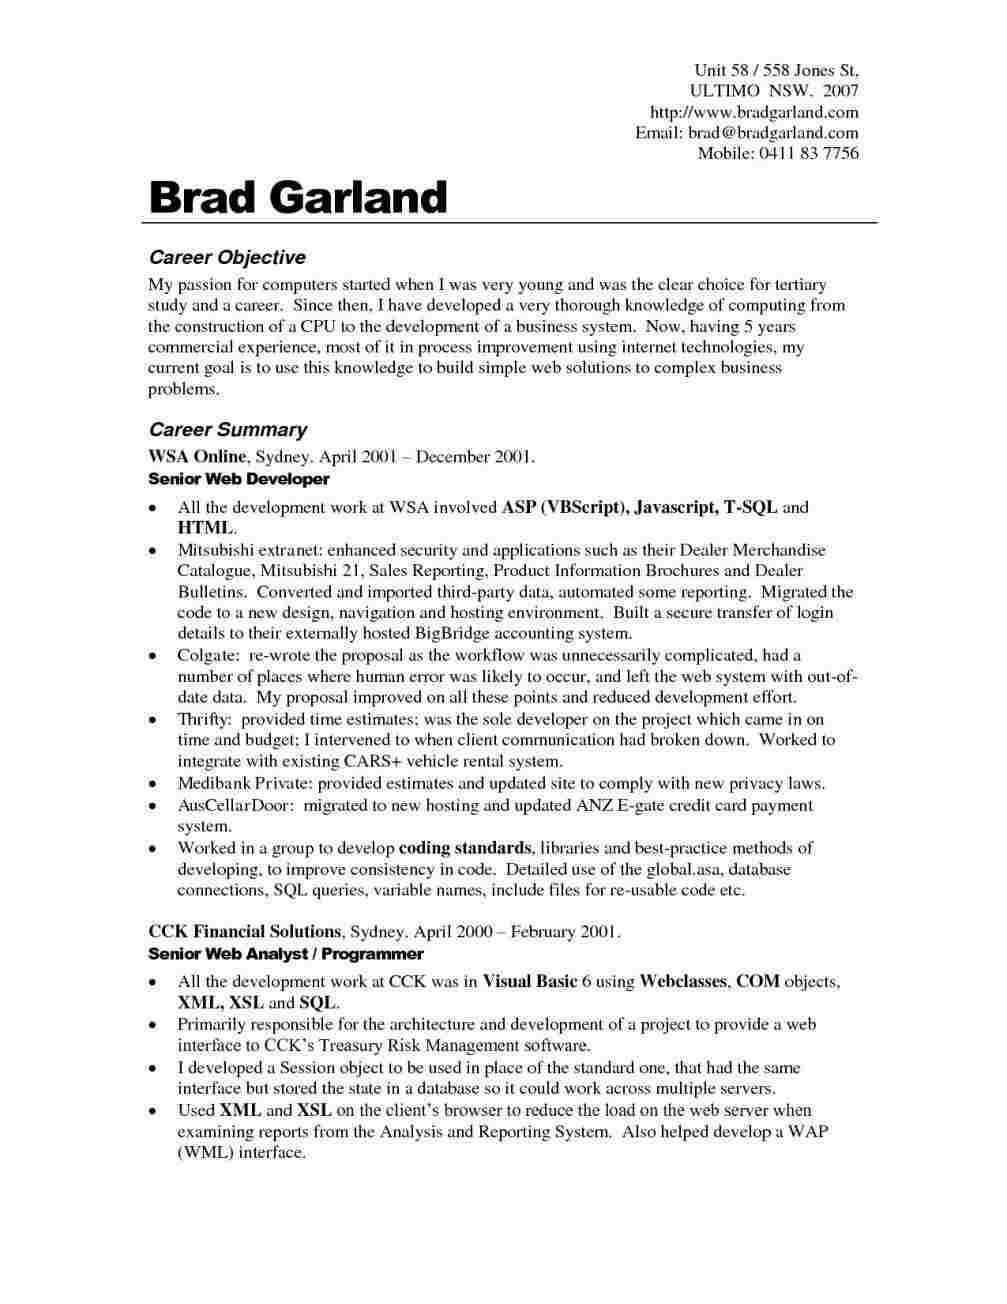 Quora Resume Objective Examples Career Objectives For Resume